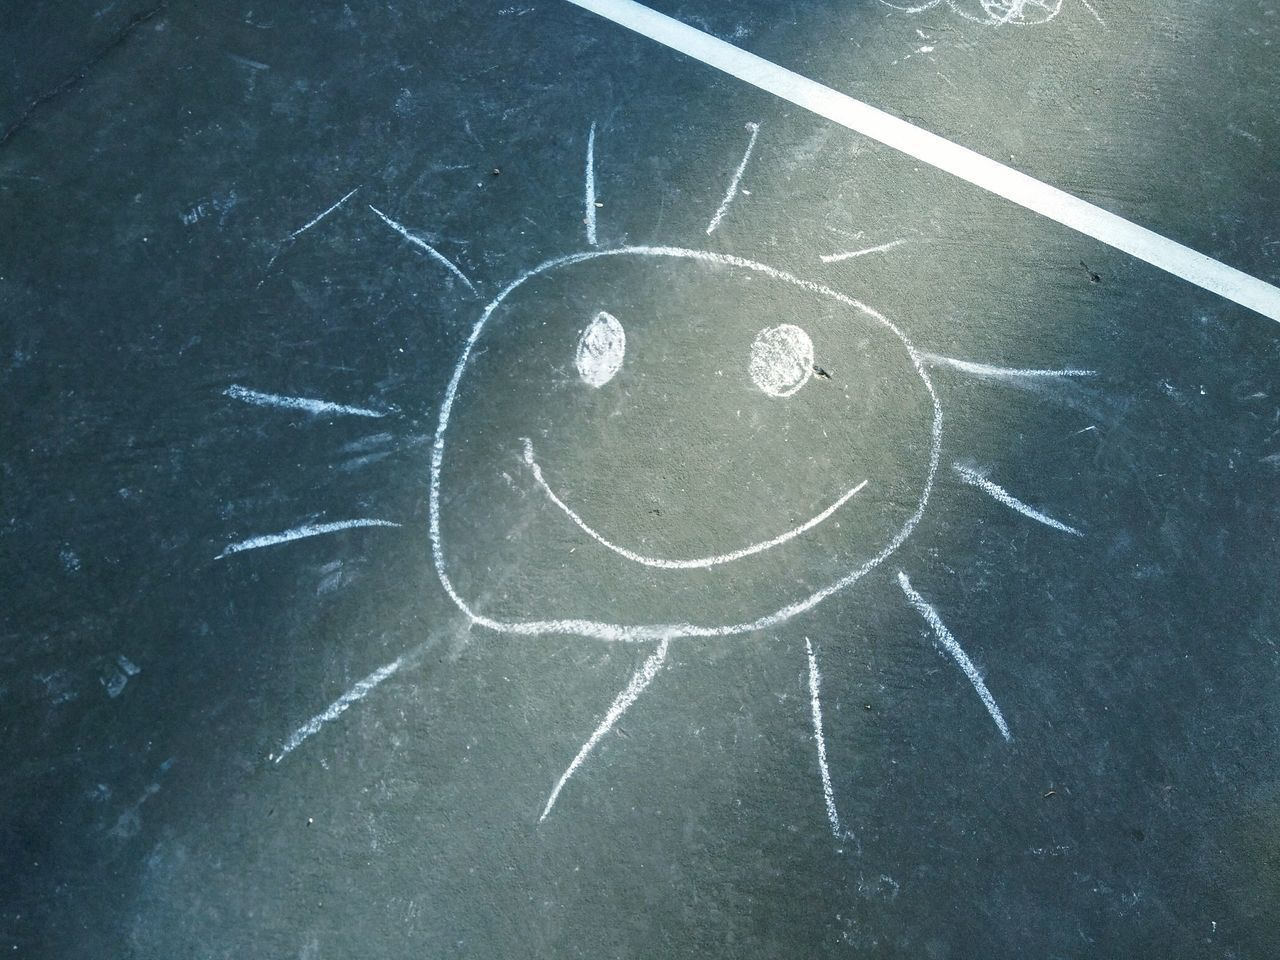 Chalk Drawing Kids Drawing Kids Drawings You Are My Sunshine Sunny Day 🌞 Sun ☀ Adelaide, South Australia Drawing - Art Product Playground Court Outdoors Cute Cute Drawings First Eyeem Photo